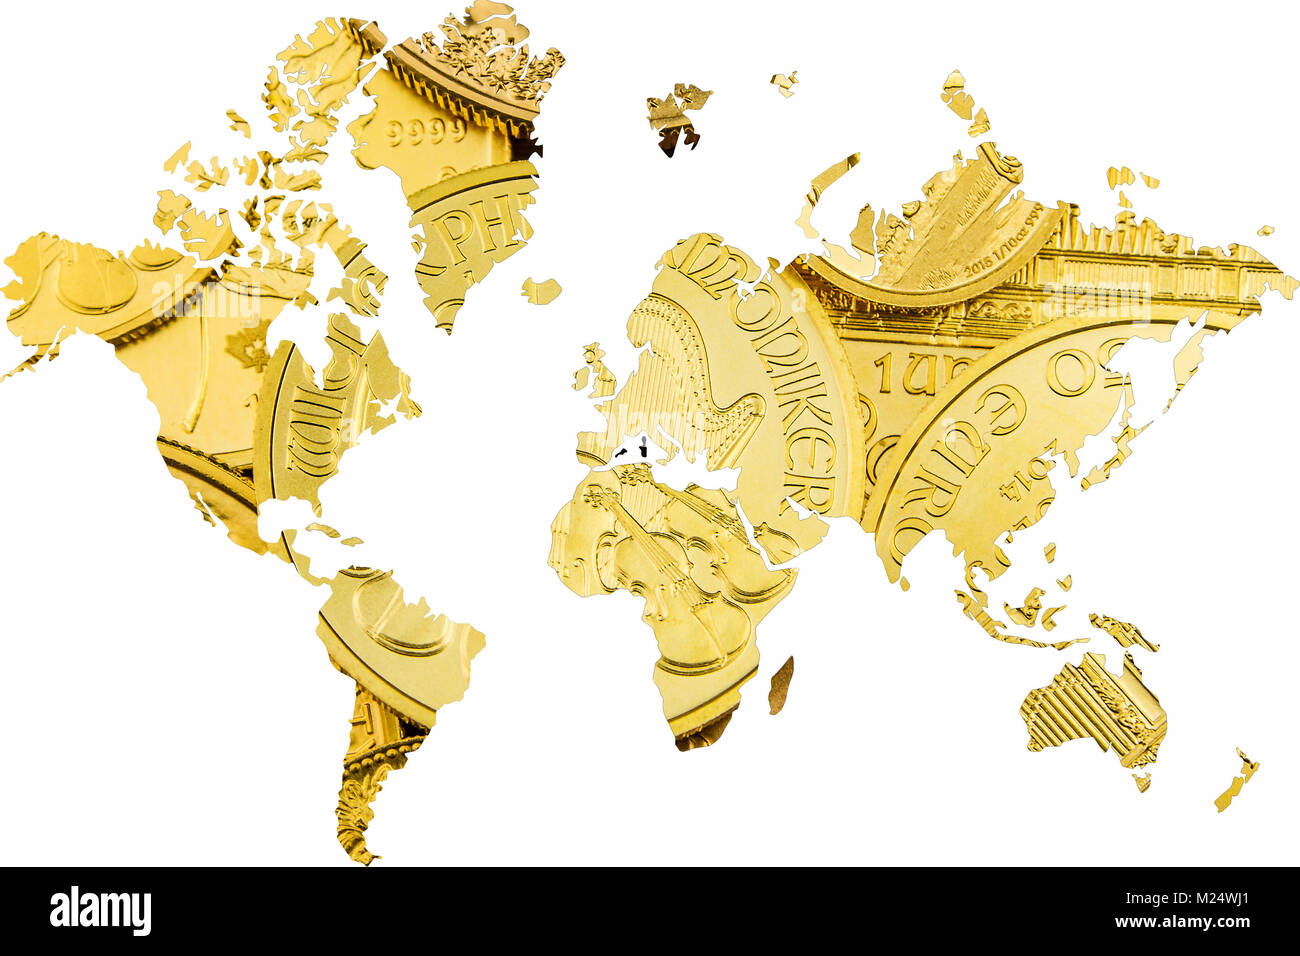 gold as renew opportunity worldwide rising - Stock Image